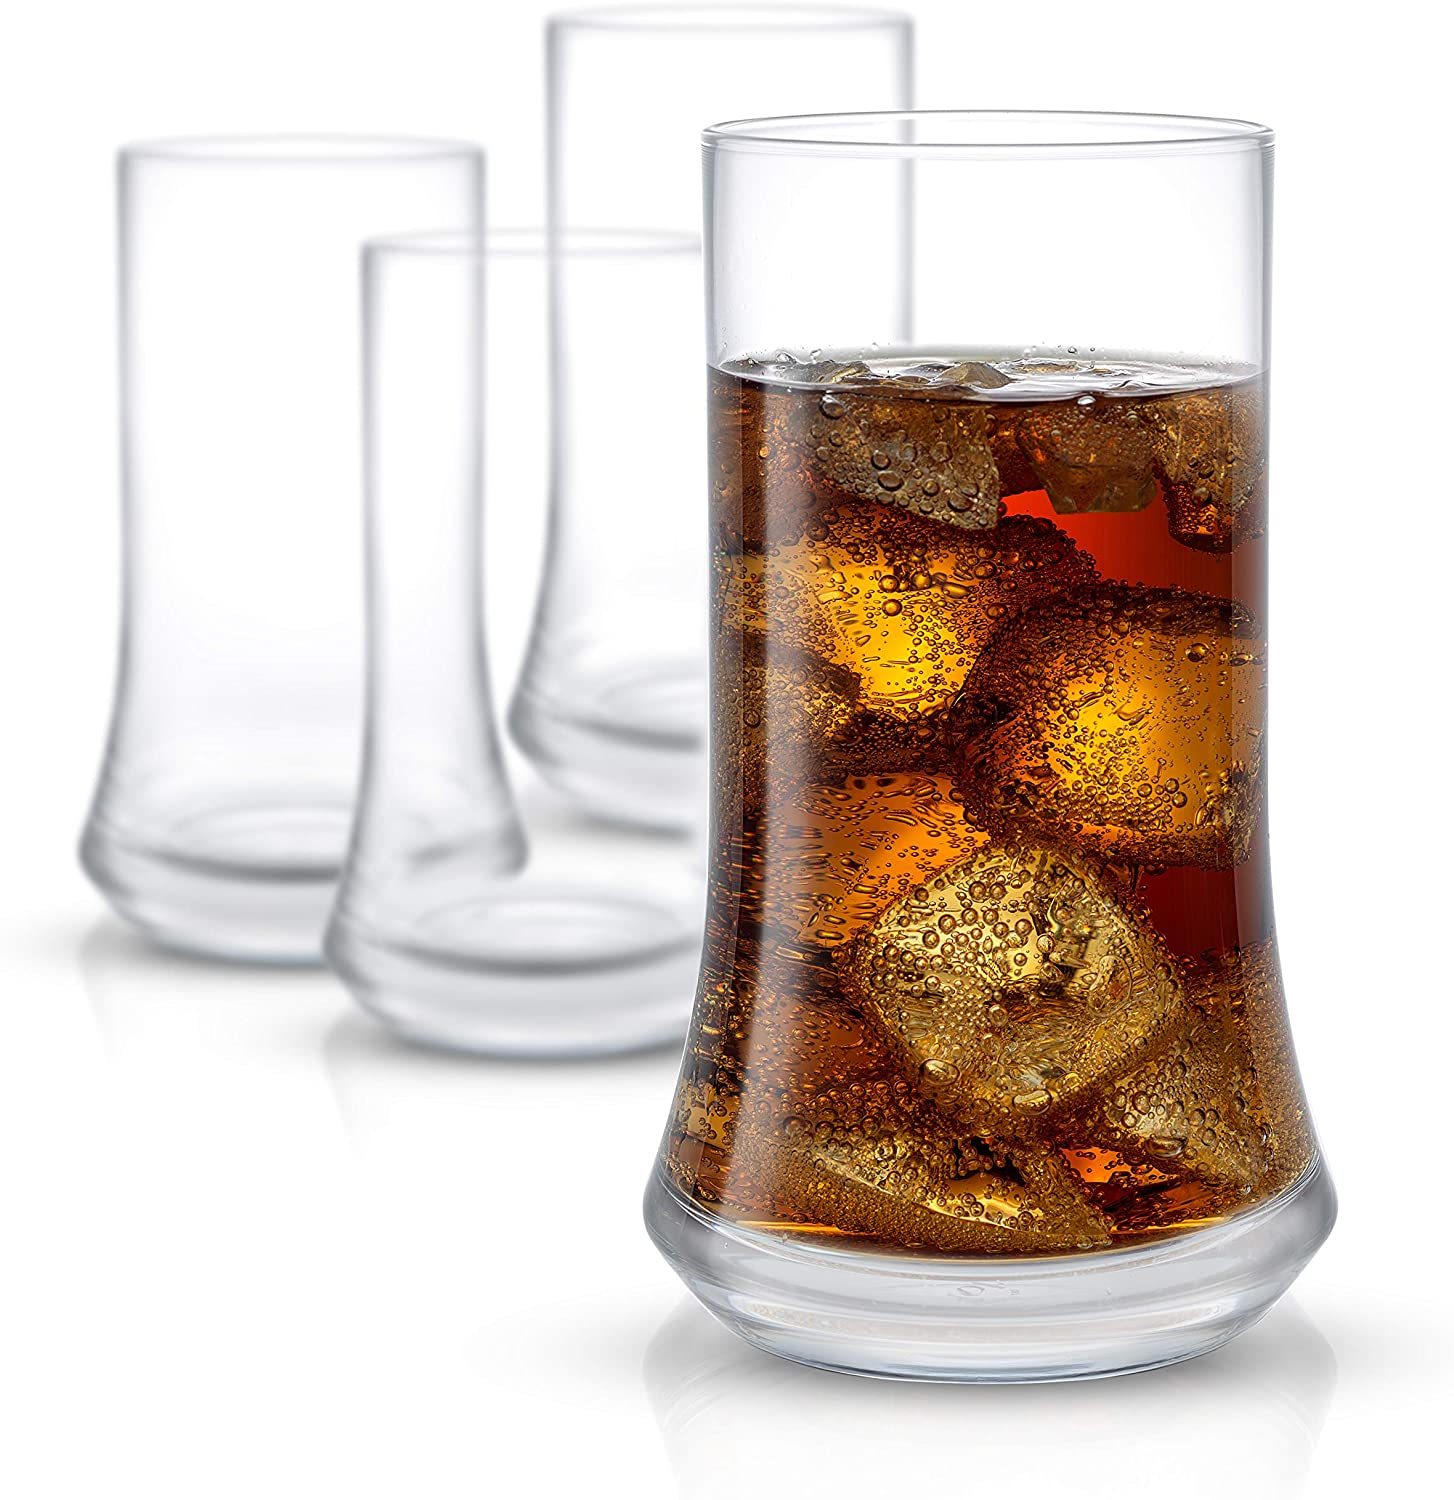 JoyJolt Cosmos Highball Glasses – Pack of 4 Tall Glass – 18.5 oz Large Drinking Glass Set – Non-Lead Crystal Tall Glasses for Water, Juice, Beer and Cocktails – Premium Tall Tumblers for Drinks